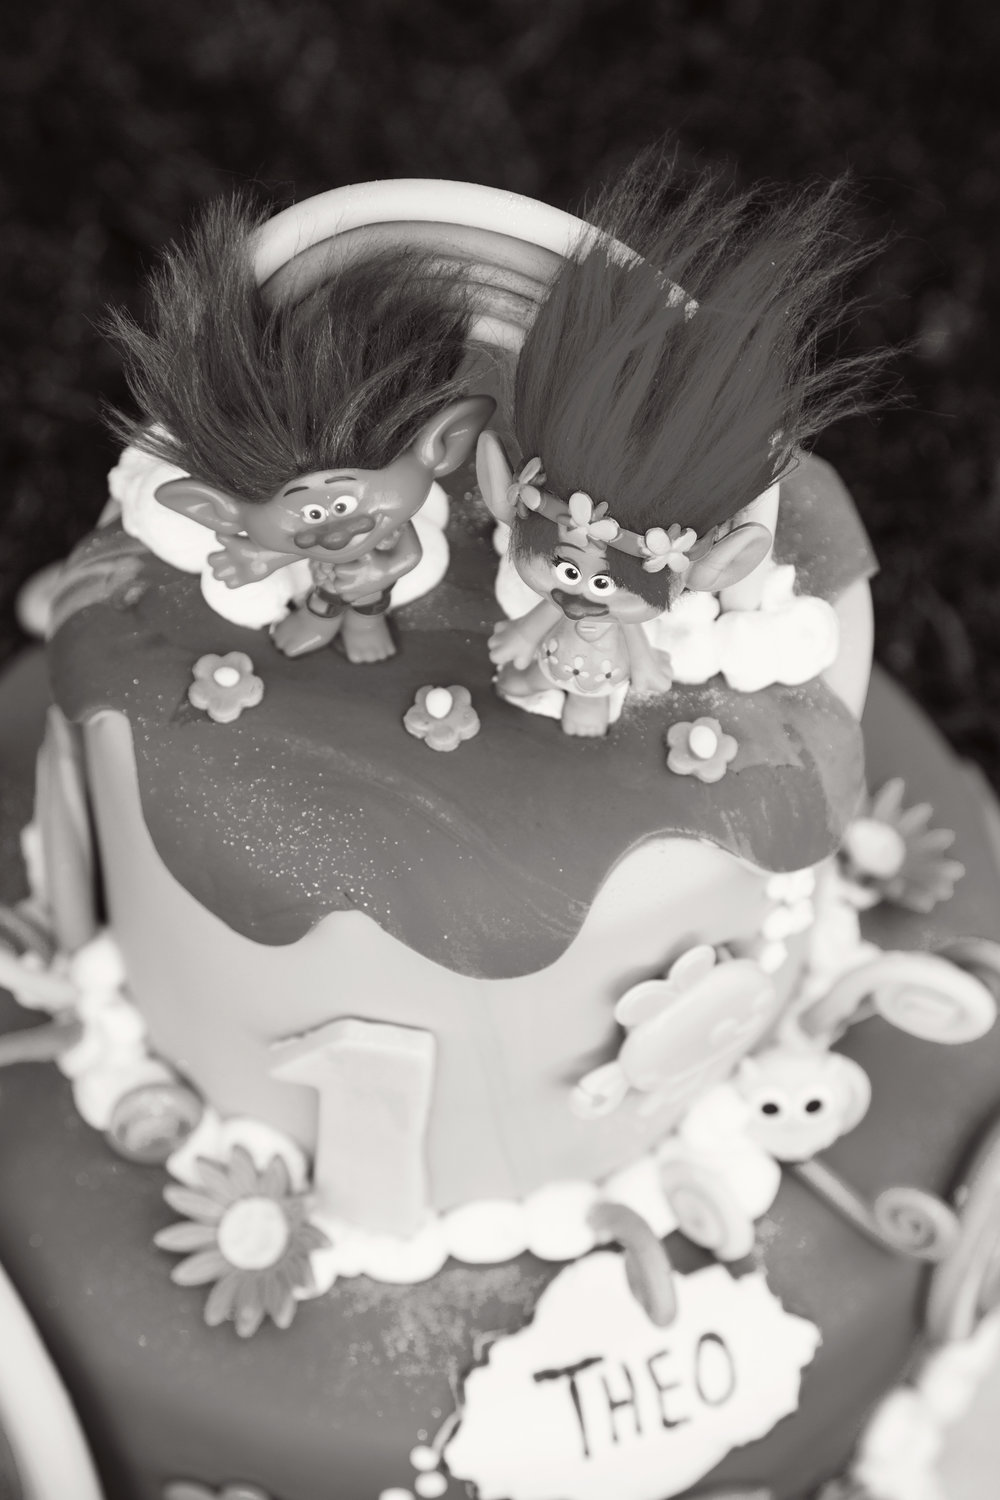 Theo_1stbday_27_bw.jpg